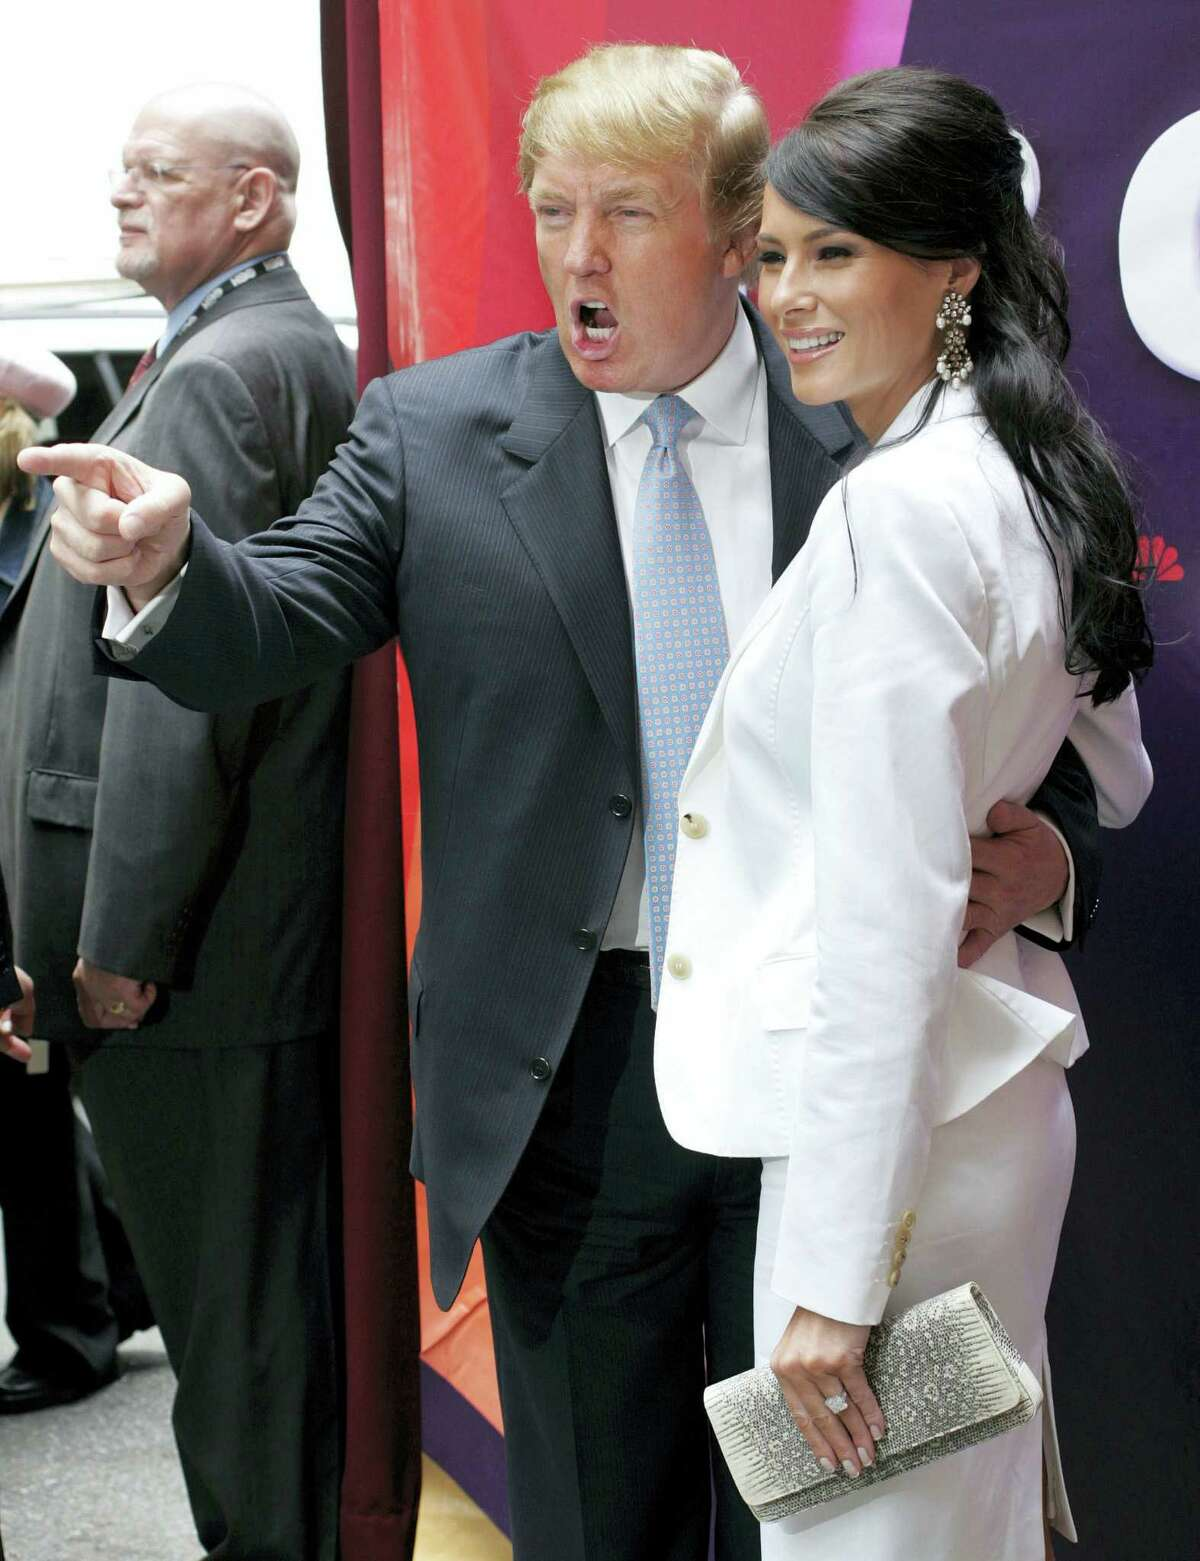 "In this Monday, May 17, 2004, file photo, Donald Trump, center, star of the television show ""The Apprentice,"" and his then fiancee, Melania Knauss, right, arrive for NBC's presentation of its fall season to advertisers at Radio City Music Hall in New York. Randal Pinkett, who won the program in December 2005 and who has recently criticized Trump during his 2016 run for president, said he remembered the real estate mogul talking about which contestants he wanted to sleep with, even though Trump had married Melania, a former model, earlier that year: ""He was like 'Isn't she hot, check her out,' kind of gawking, something to the effect of 'I'd like to hit that.'"""